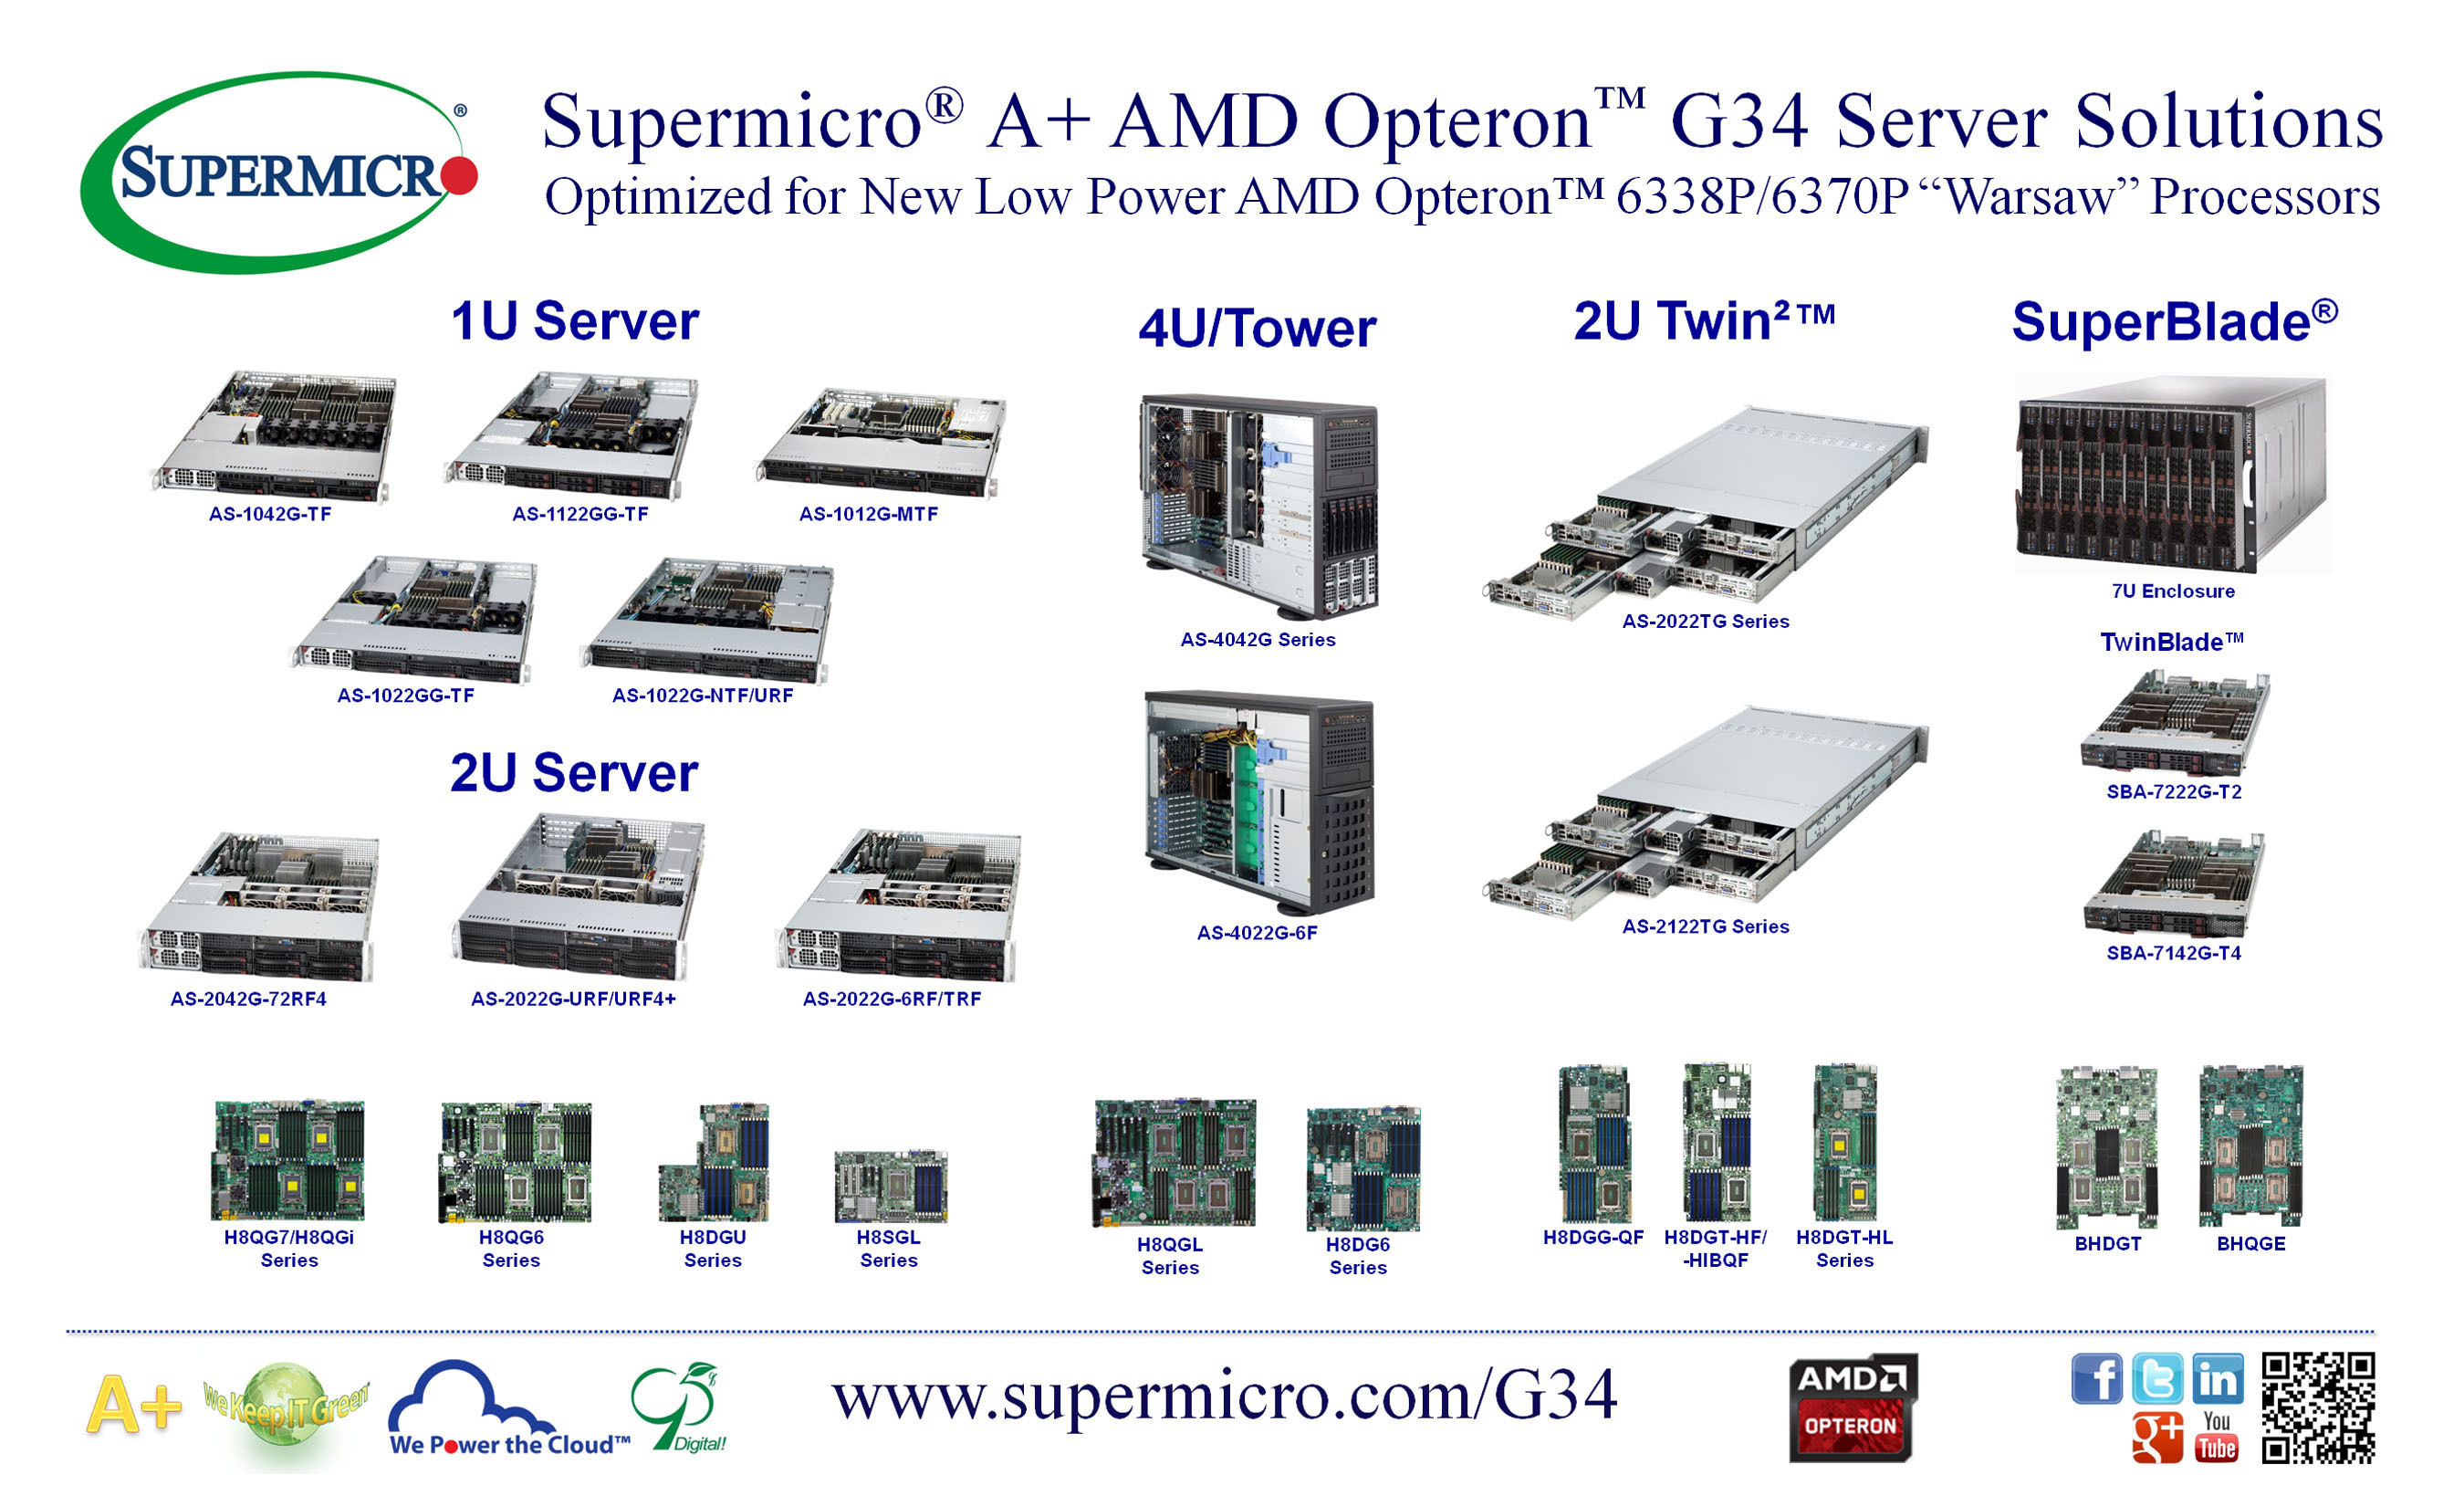 Supermicro(R) Ships A+ Server Solutions Optimized for AMD Opteron(TM) 6338P/6370P. (PRNewsFoto/Super Micro ...